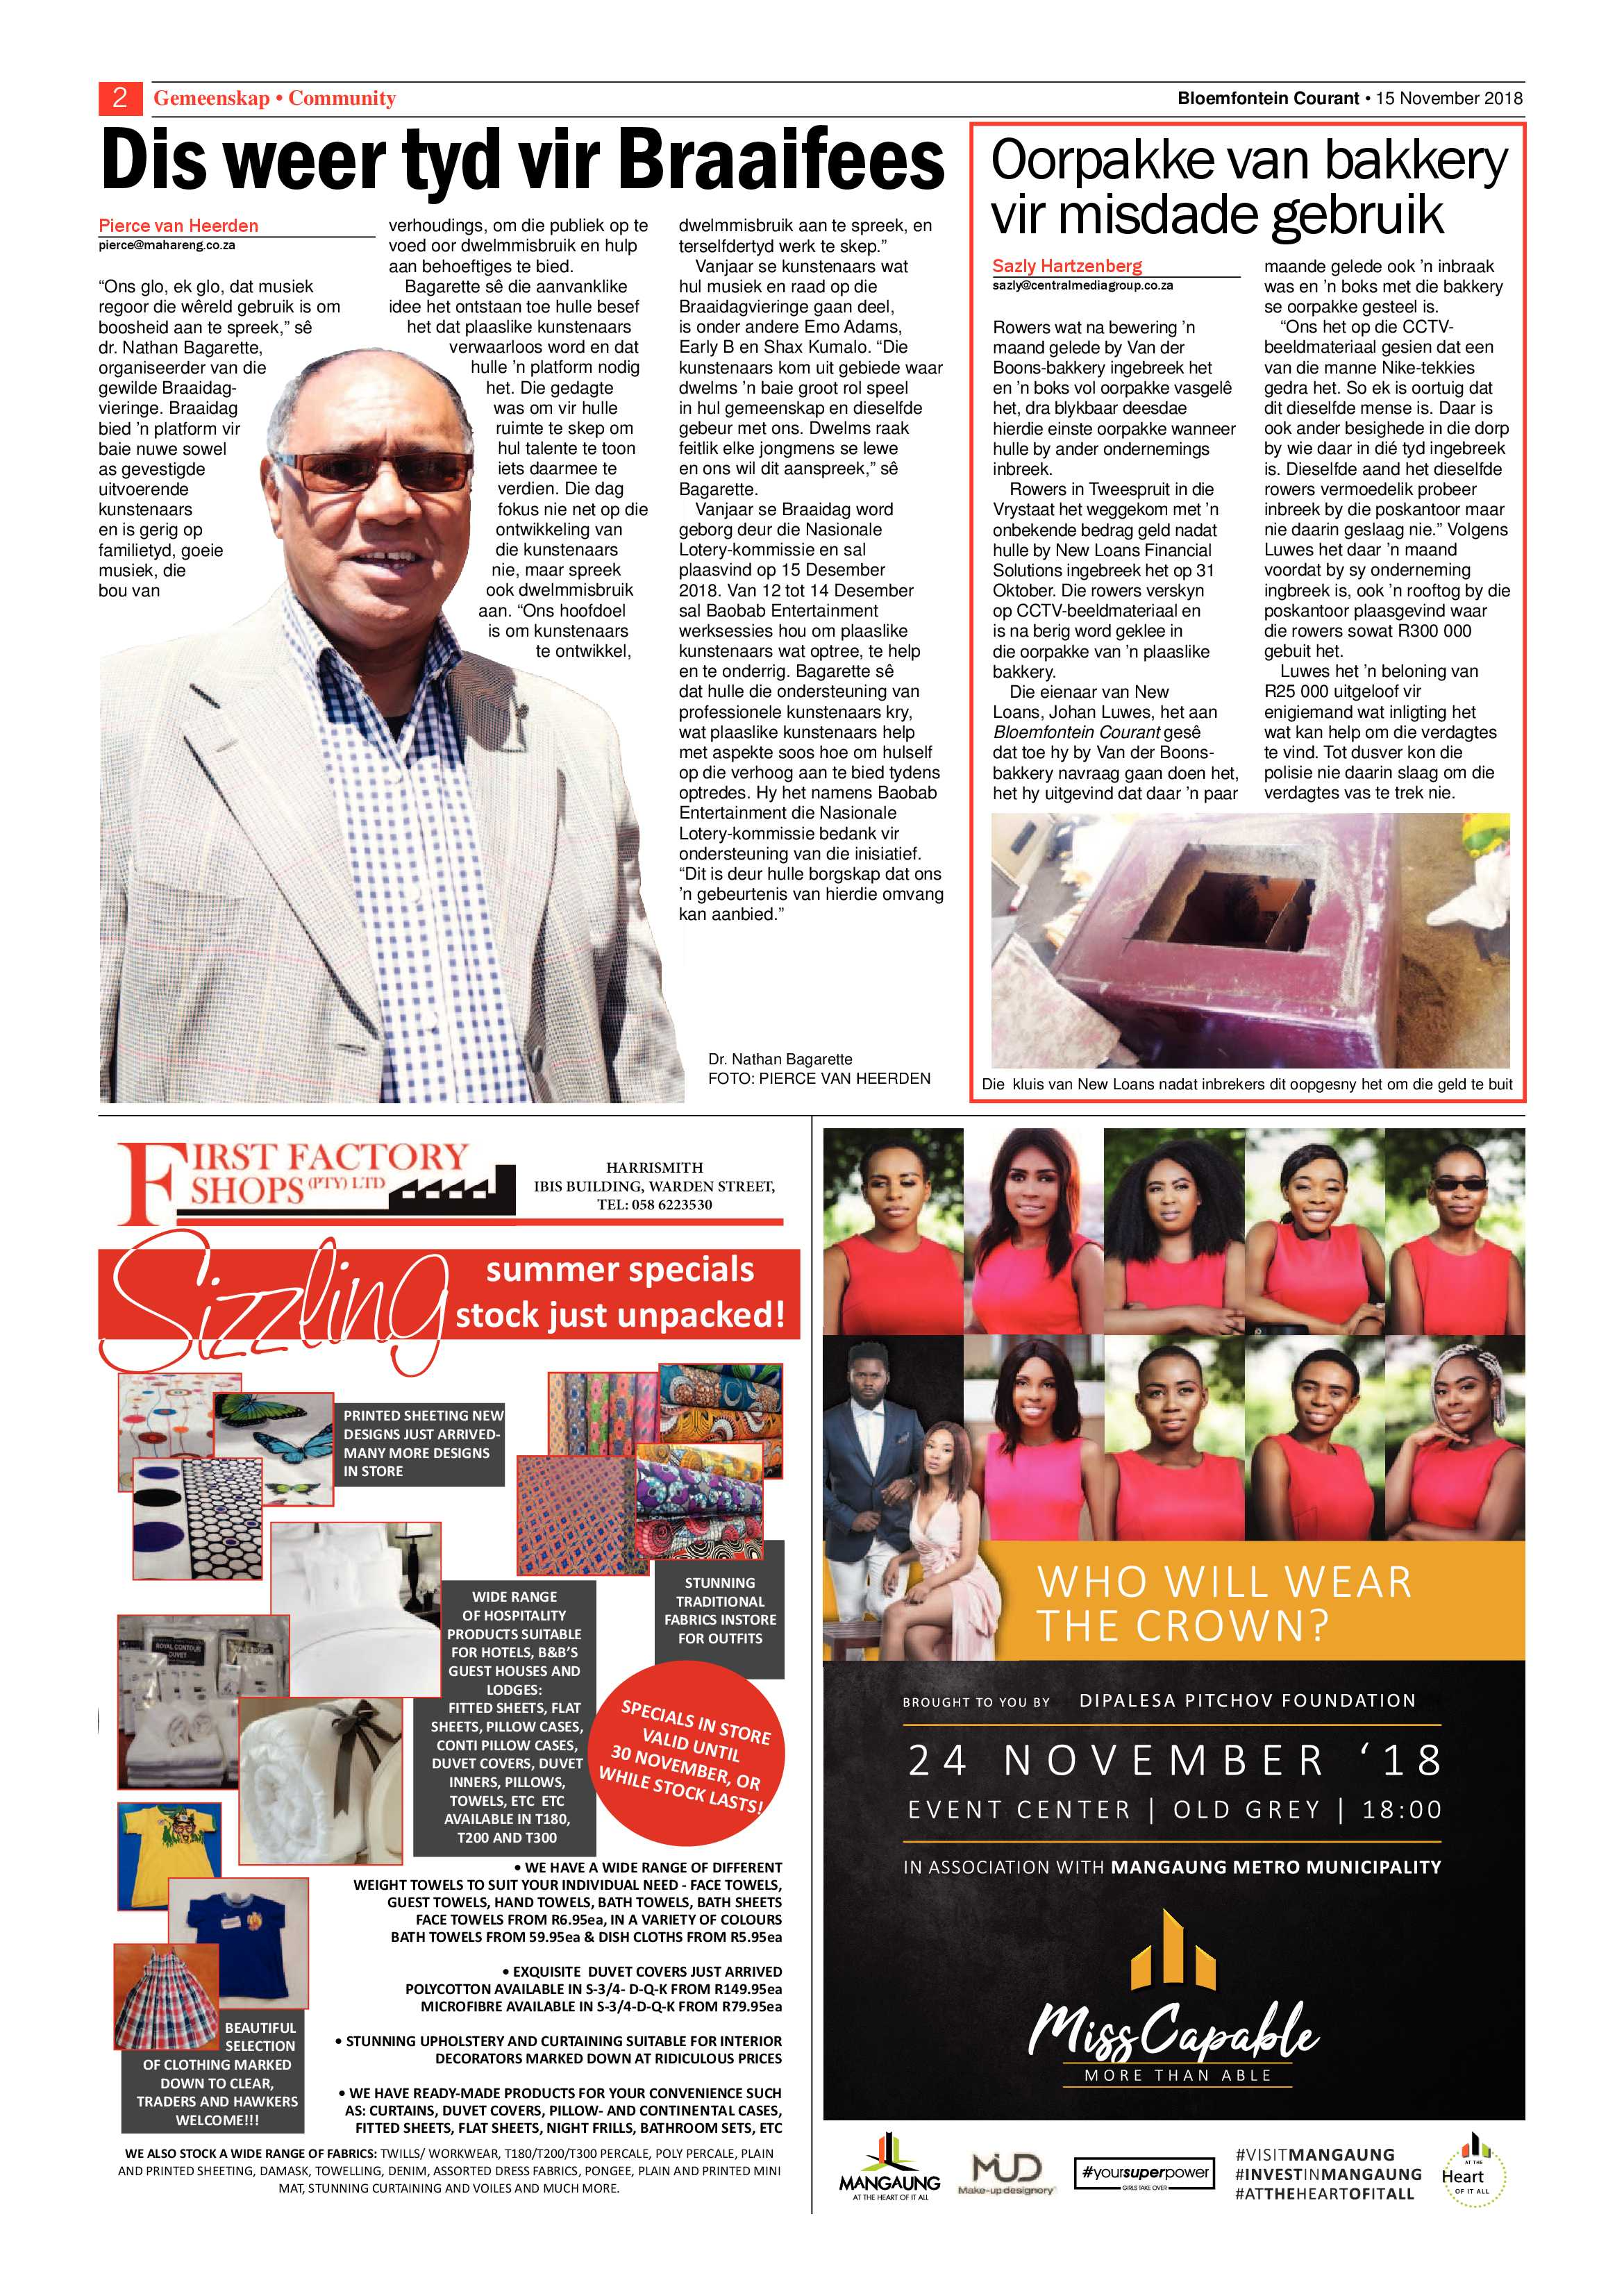 courant-15-november-2018-epapers-page-2